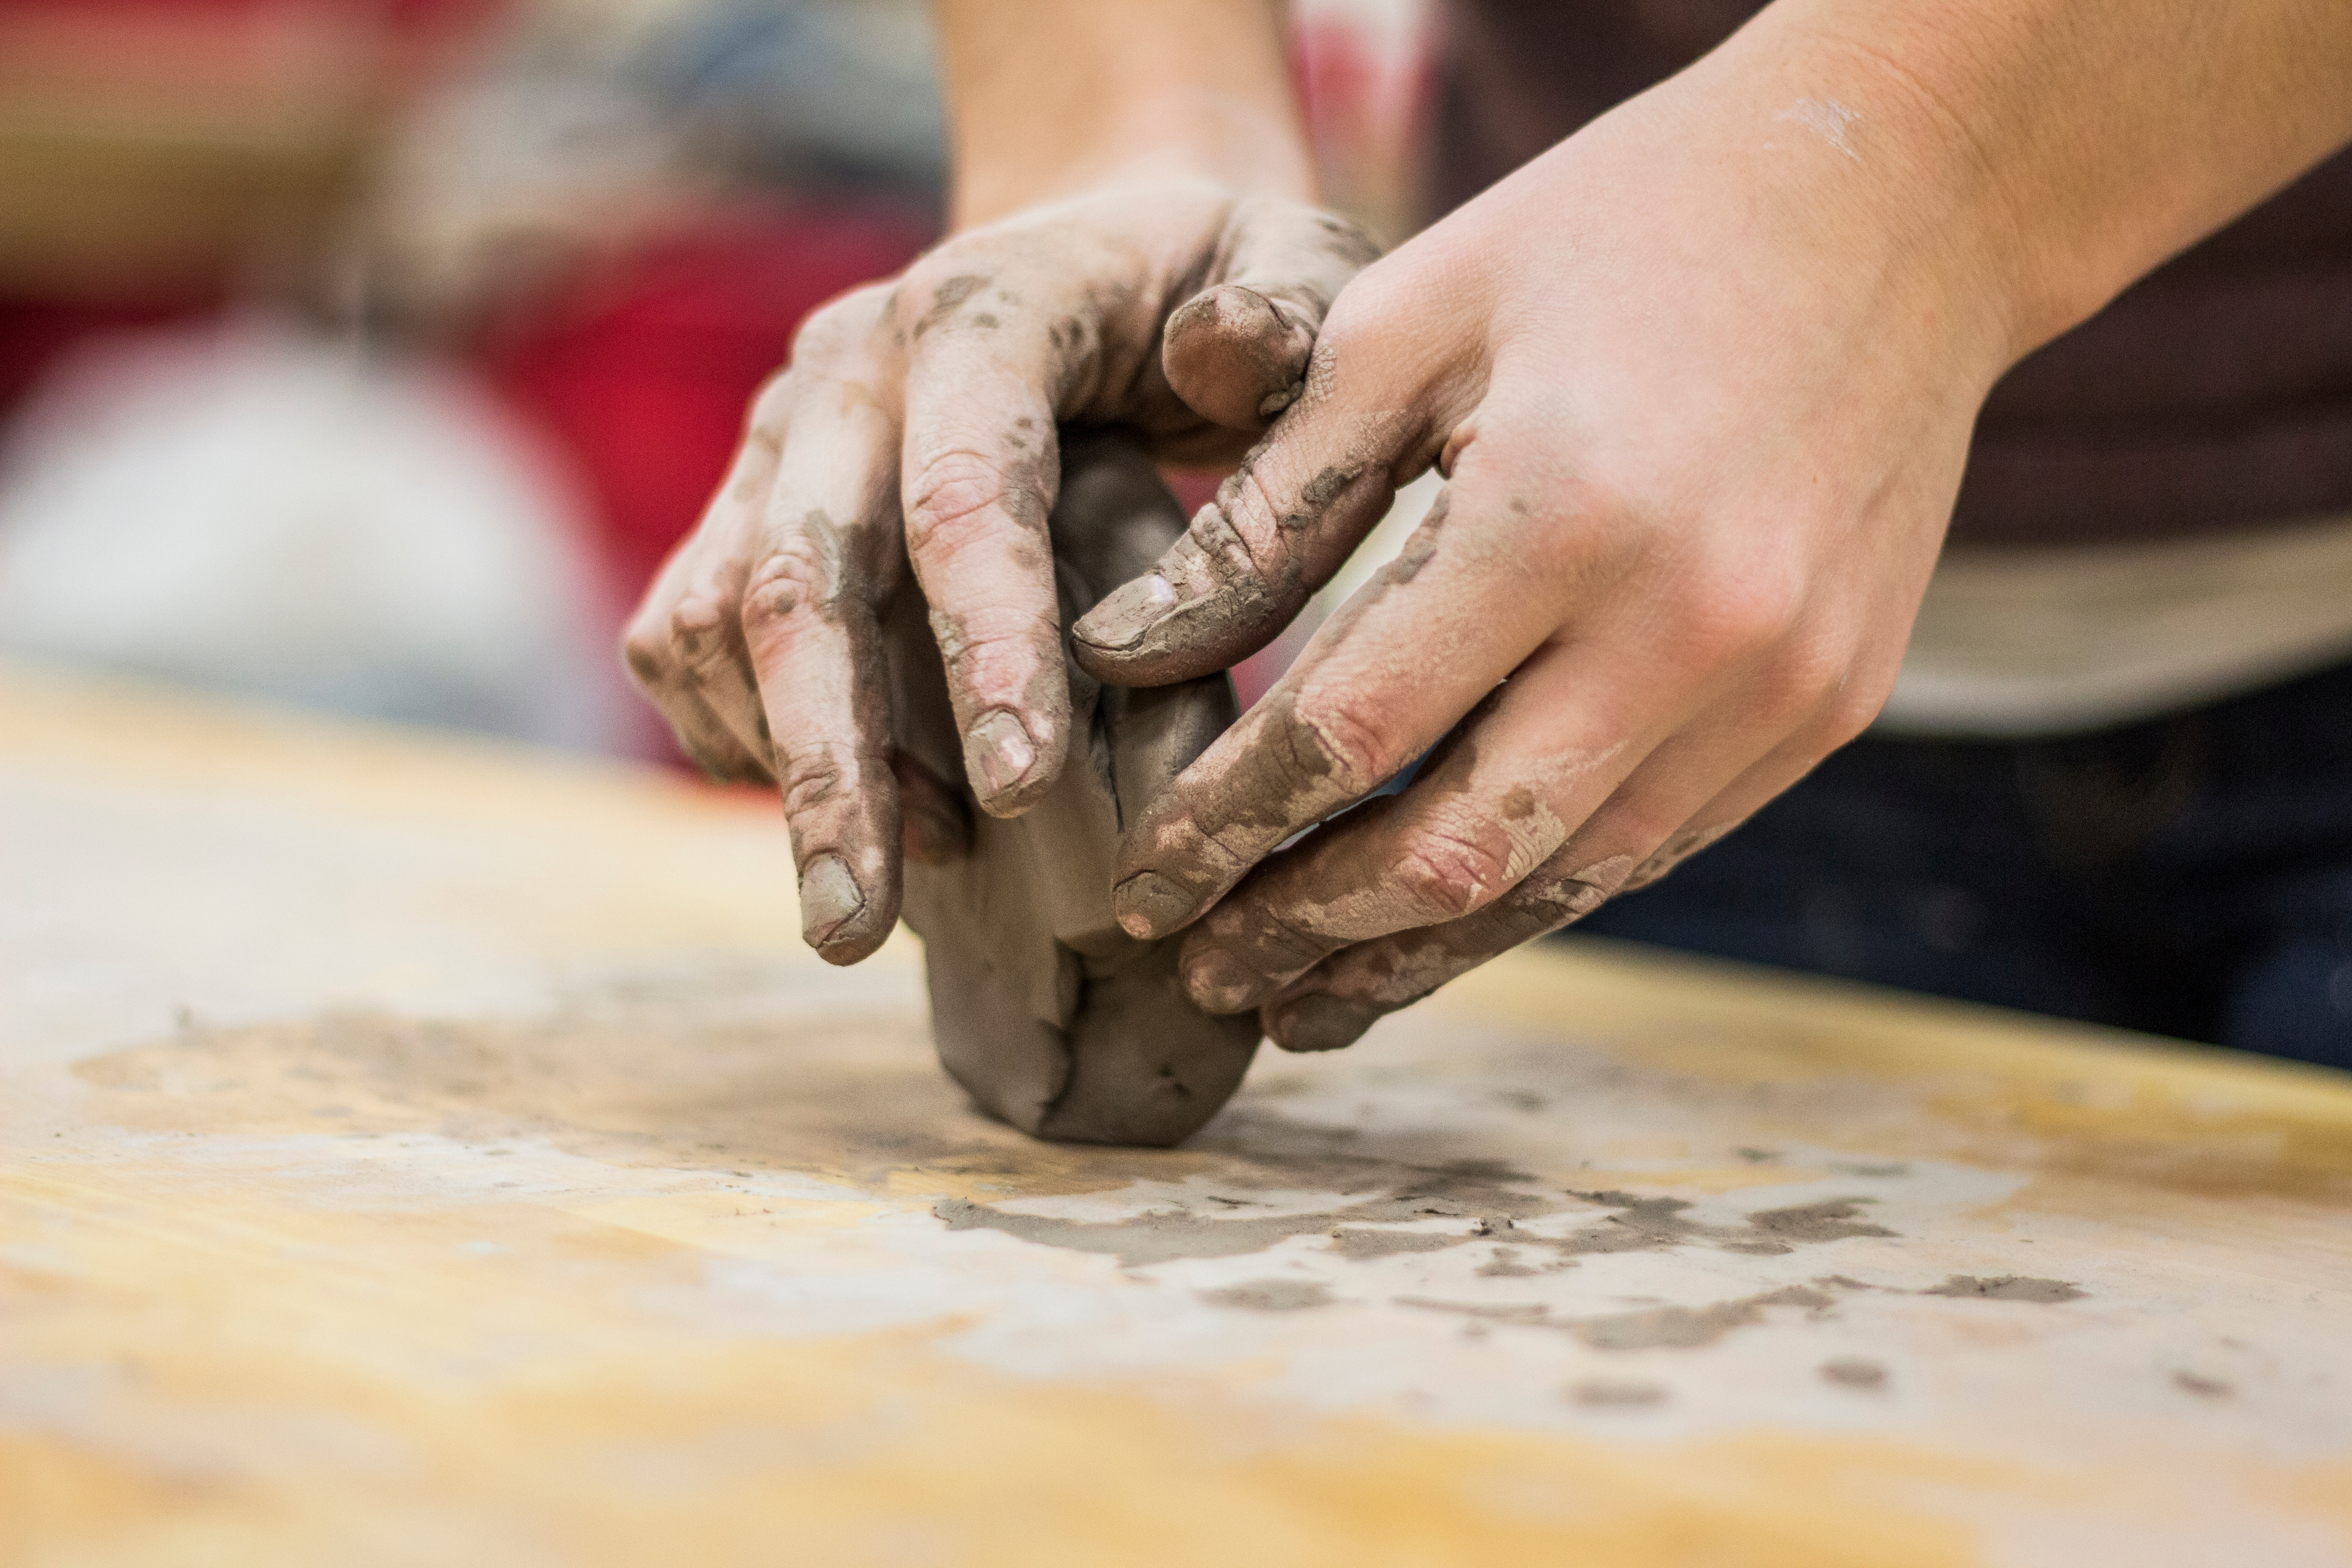 Dirty-hands-scupting-clay-pottery-quality-content